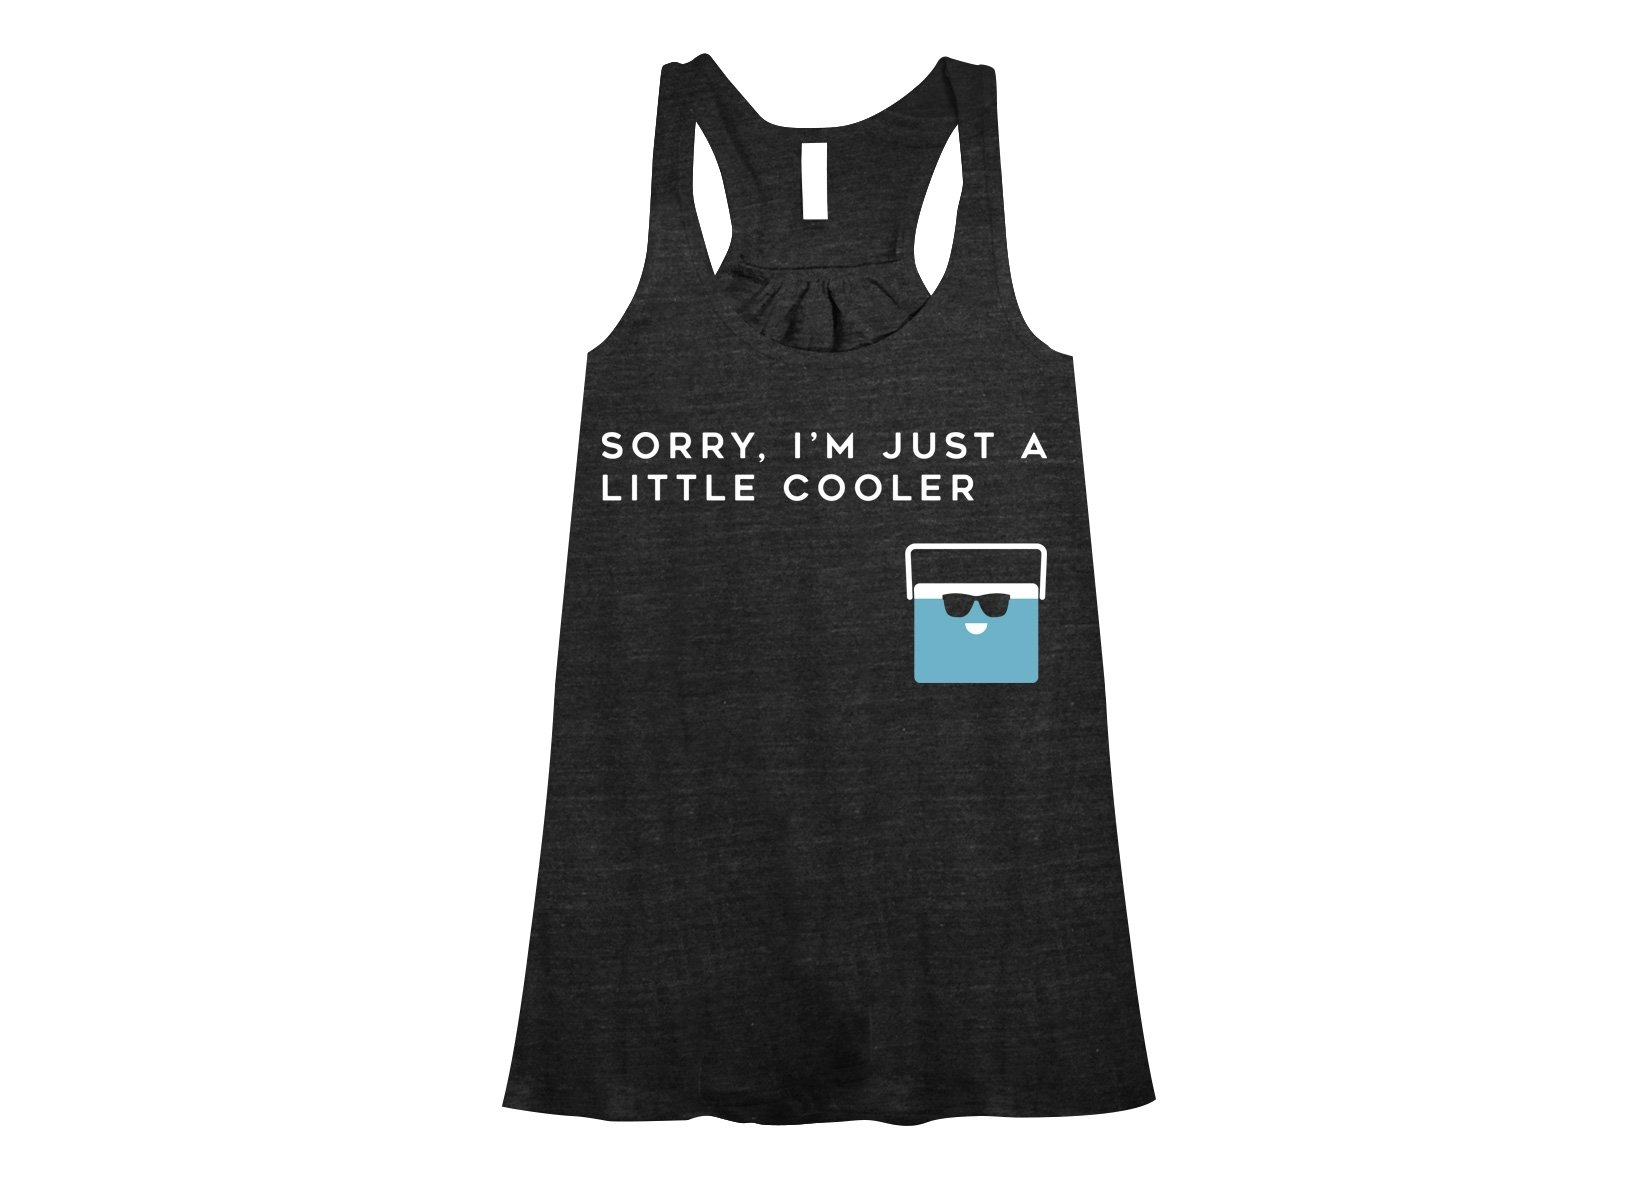 Sorry, I'm Just A Little Cooler on Womens Tanks T-Shirt